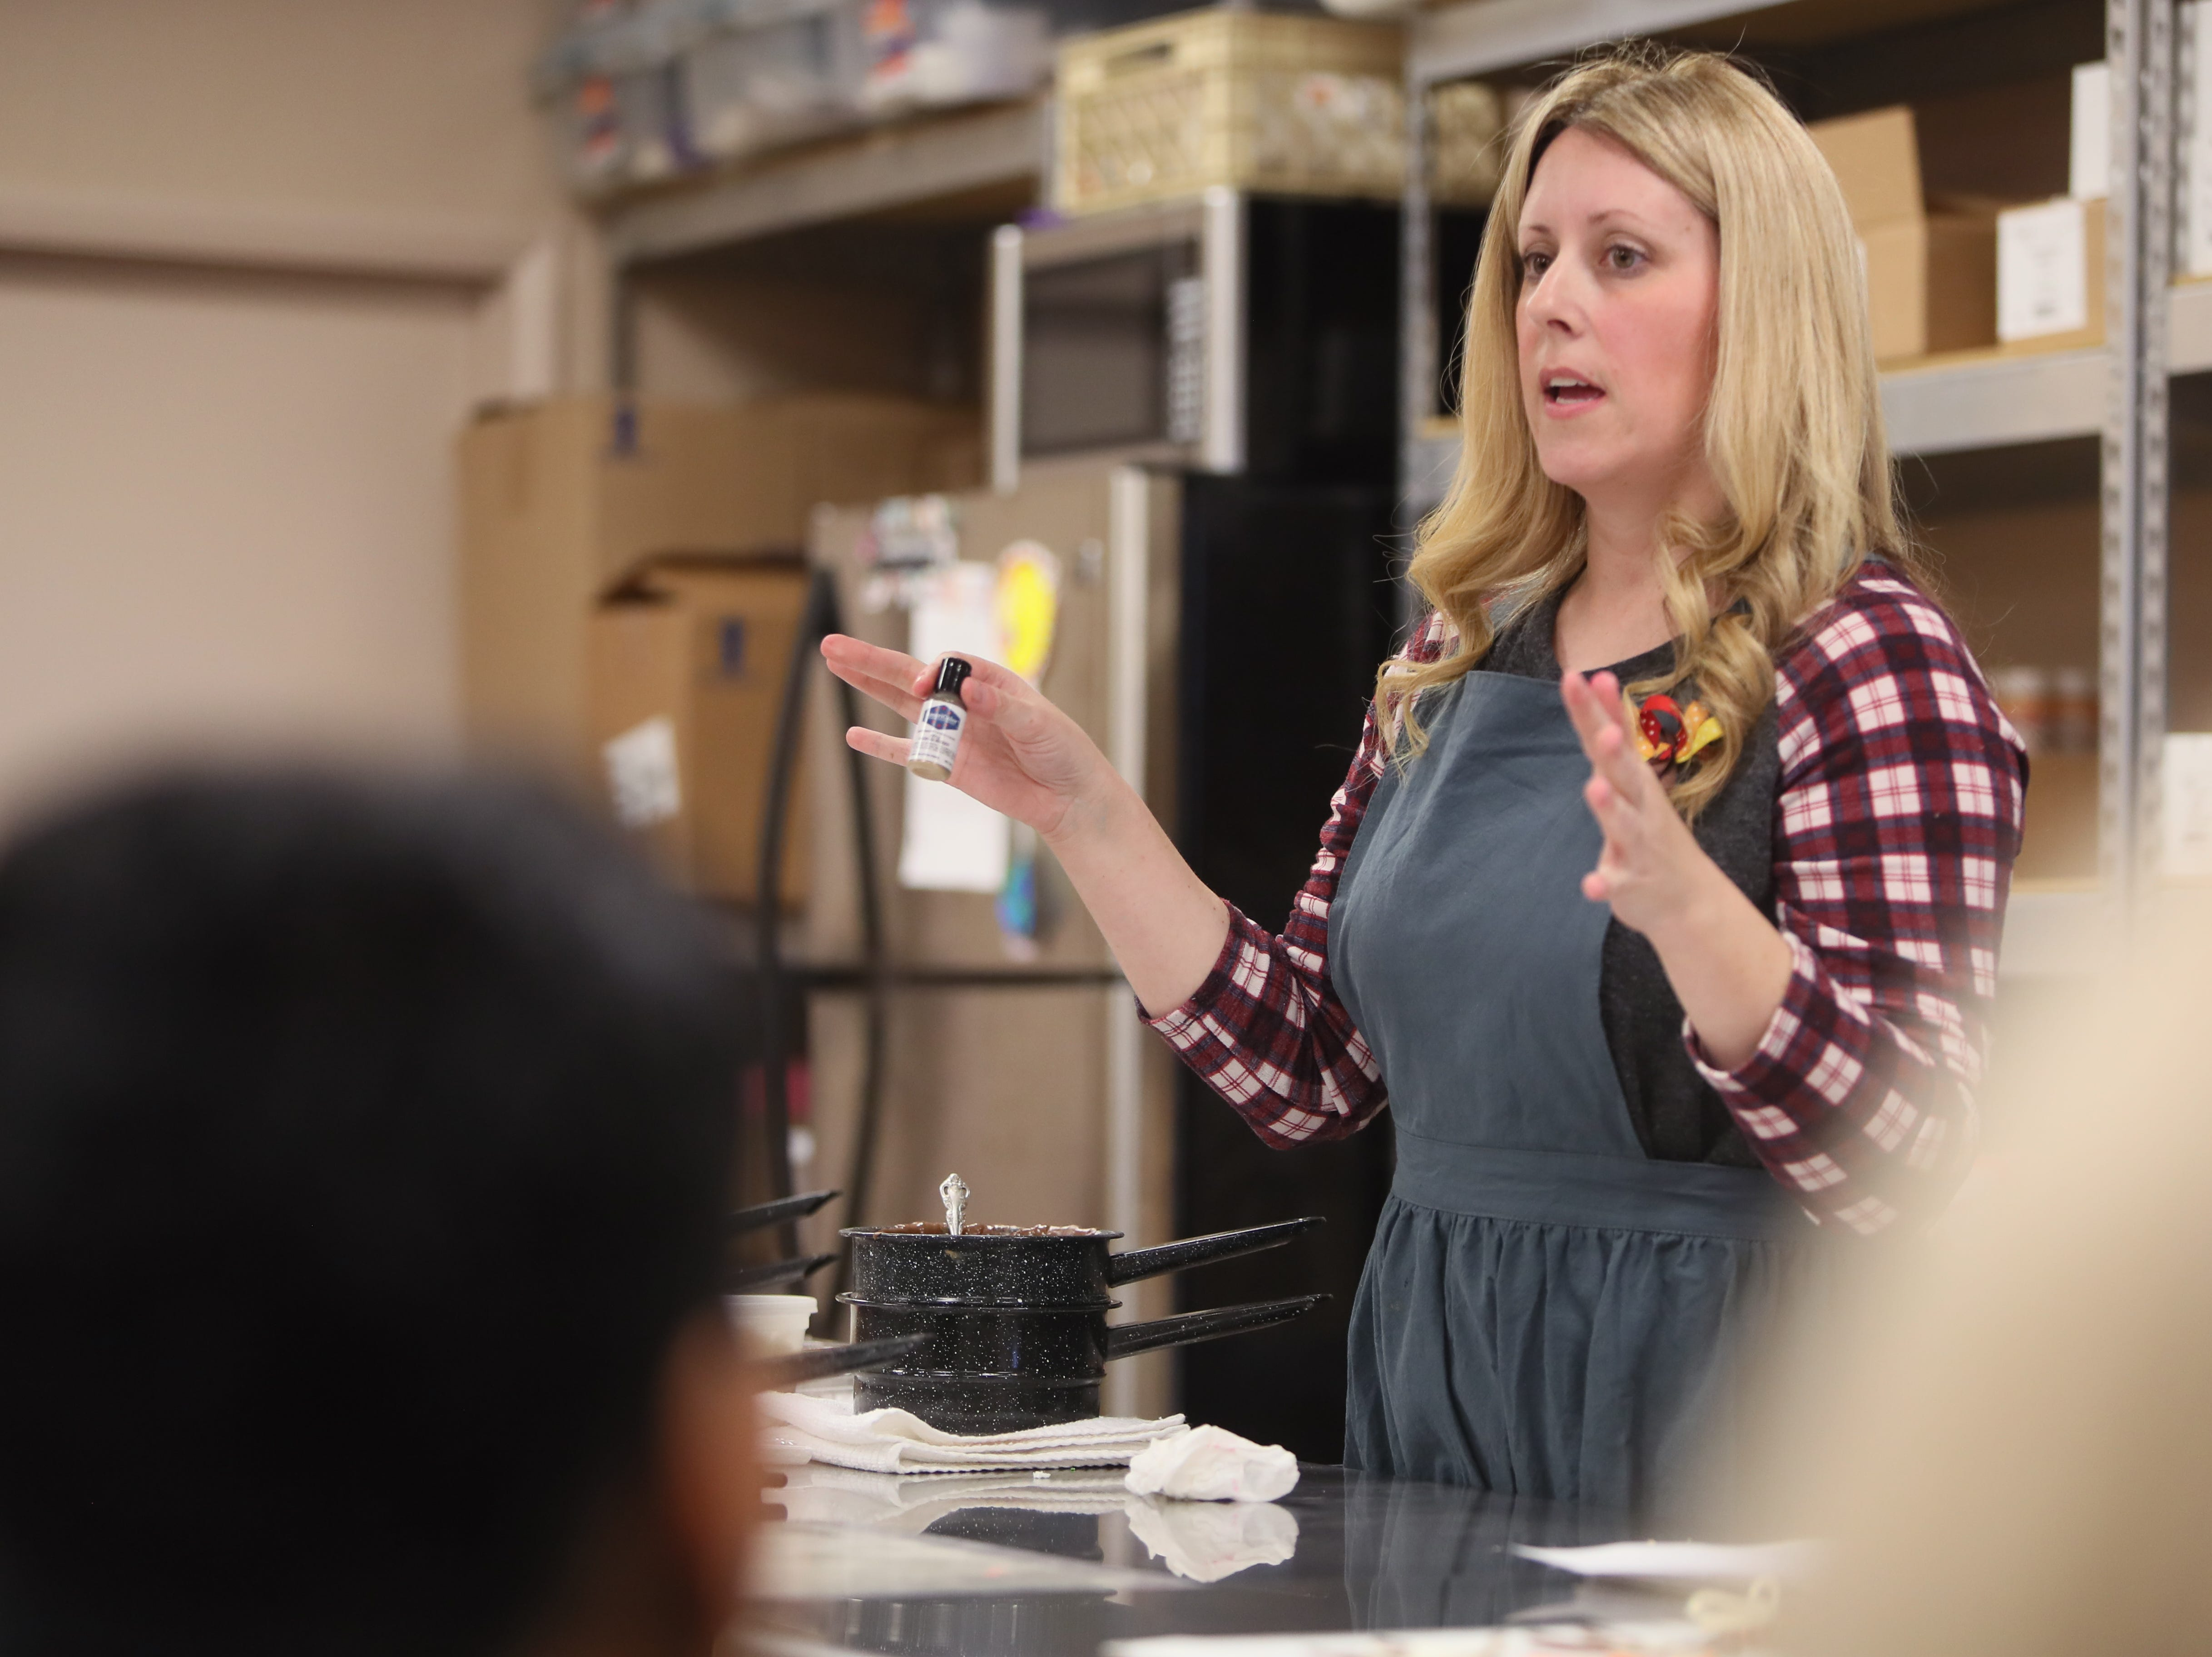 Toni Faherty walks students through decorating techniques, part of her Holiday Candy Class at Mary Carter Decorating Center on Saturday, Nov. 10, 2018. The class is one of four the family hosts for free holiday sweets creation lessons.